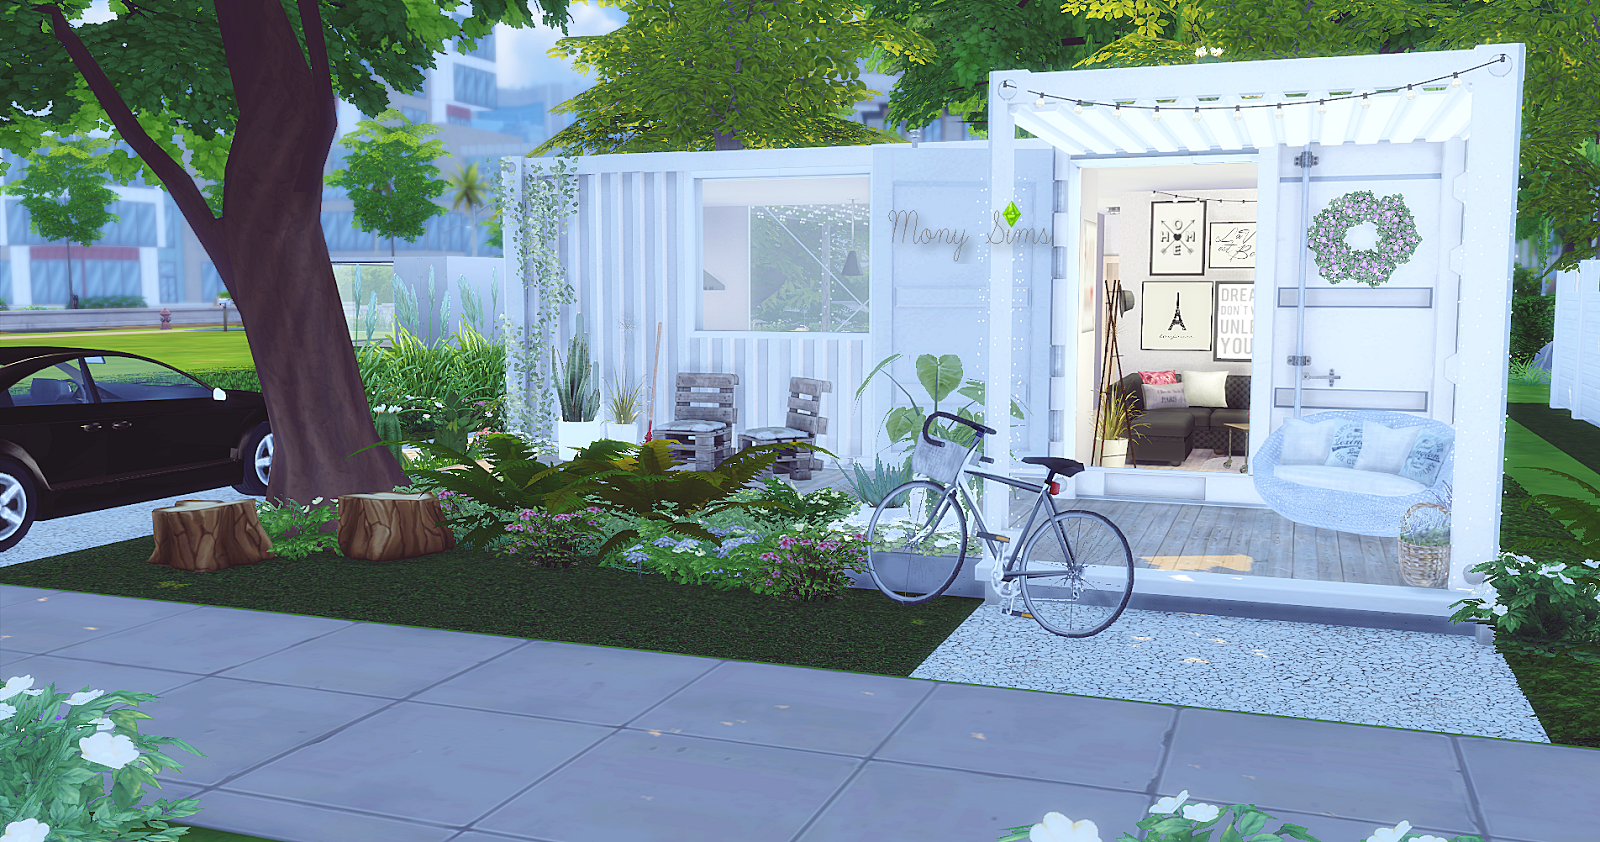 My sims 4 blog the cute container house by monysims for Small minimalist home